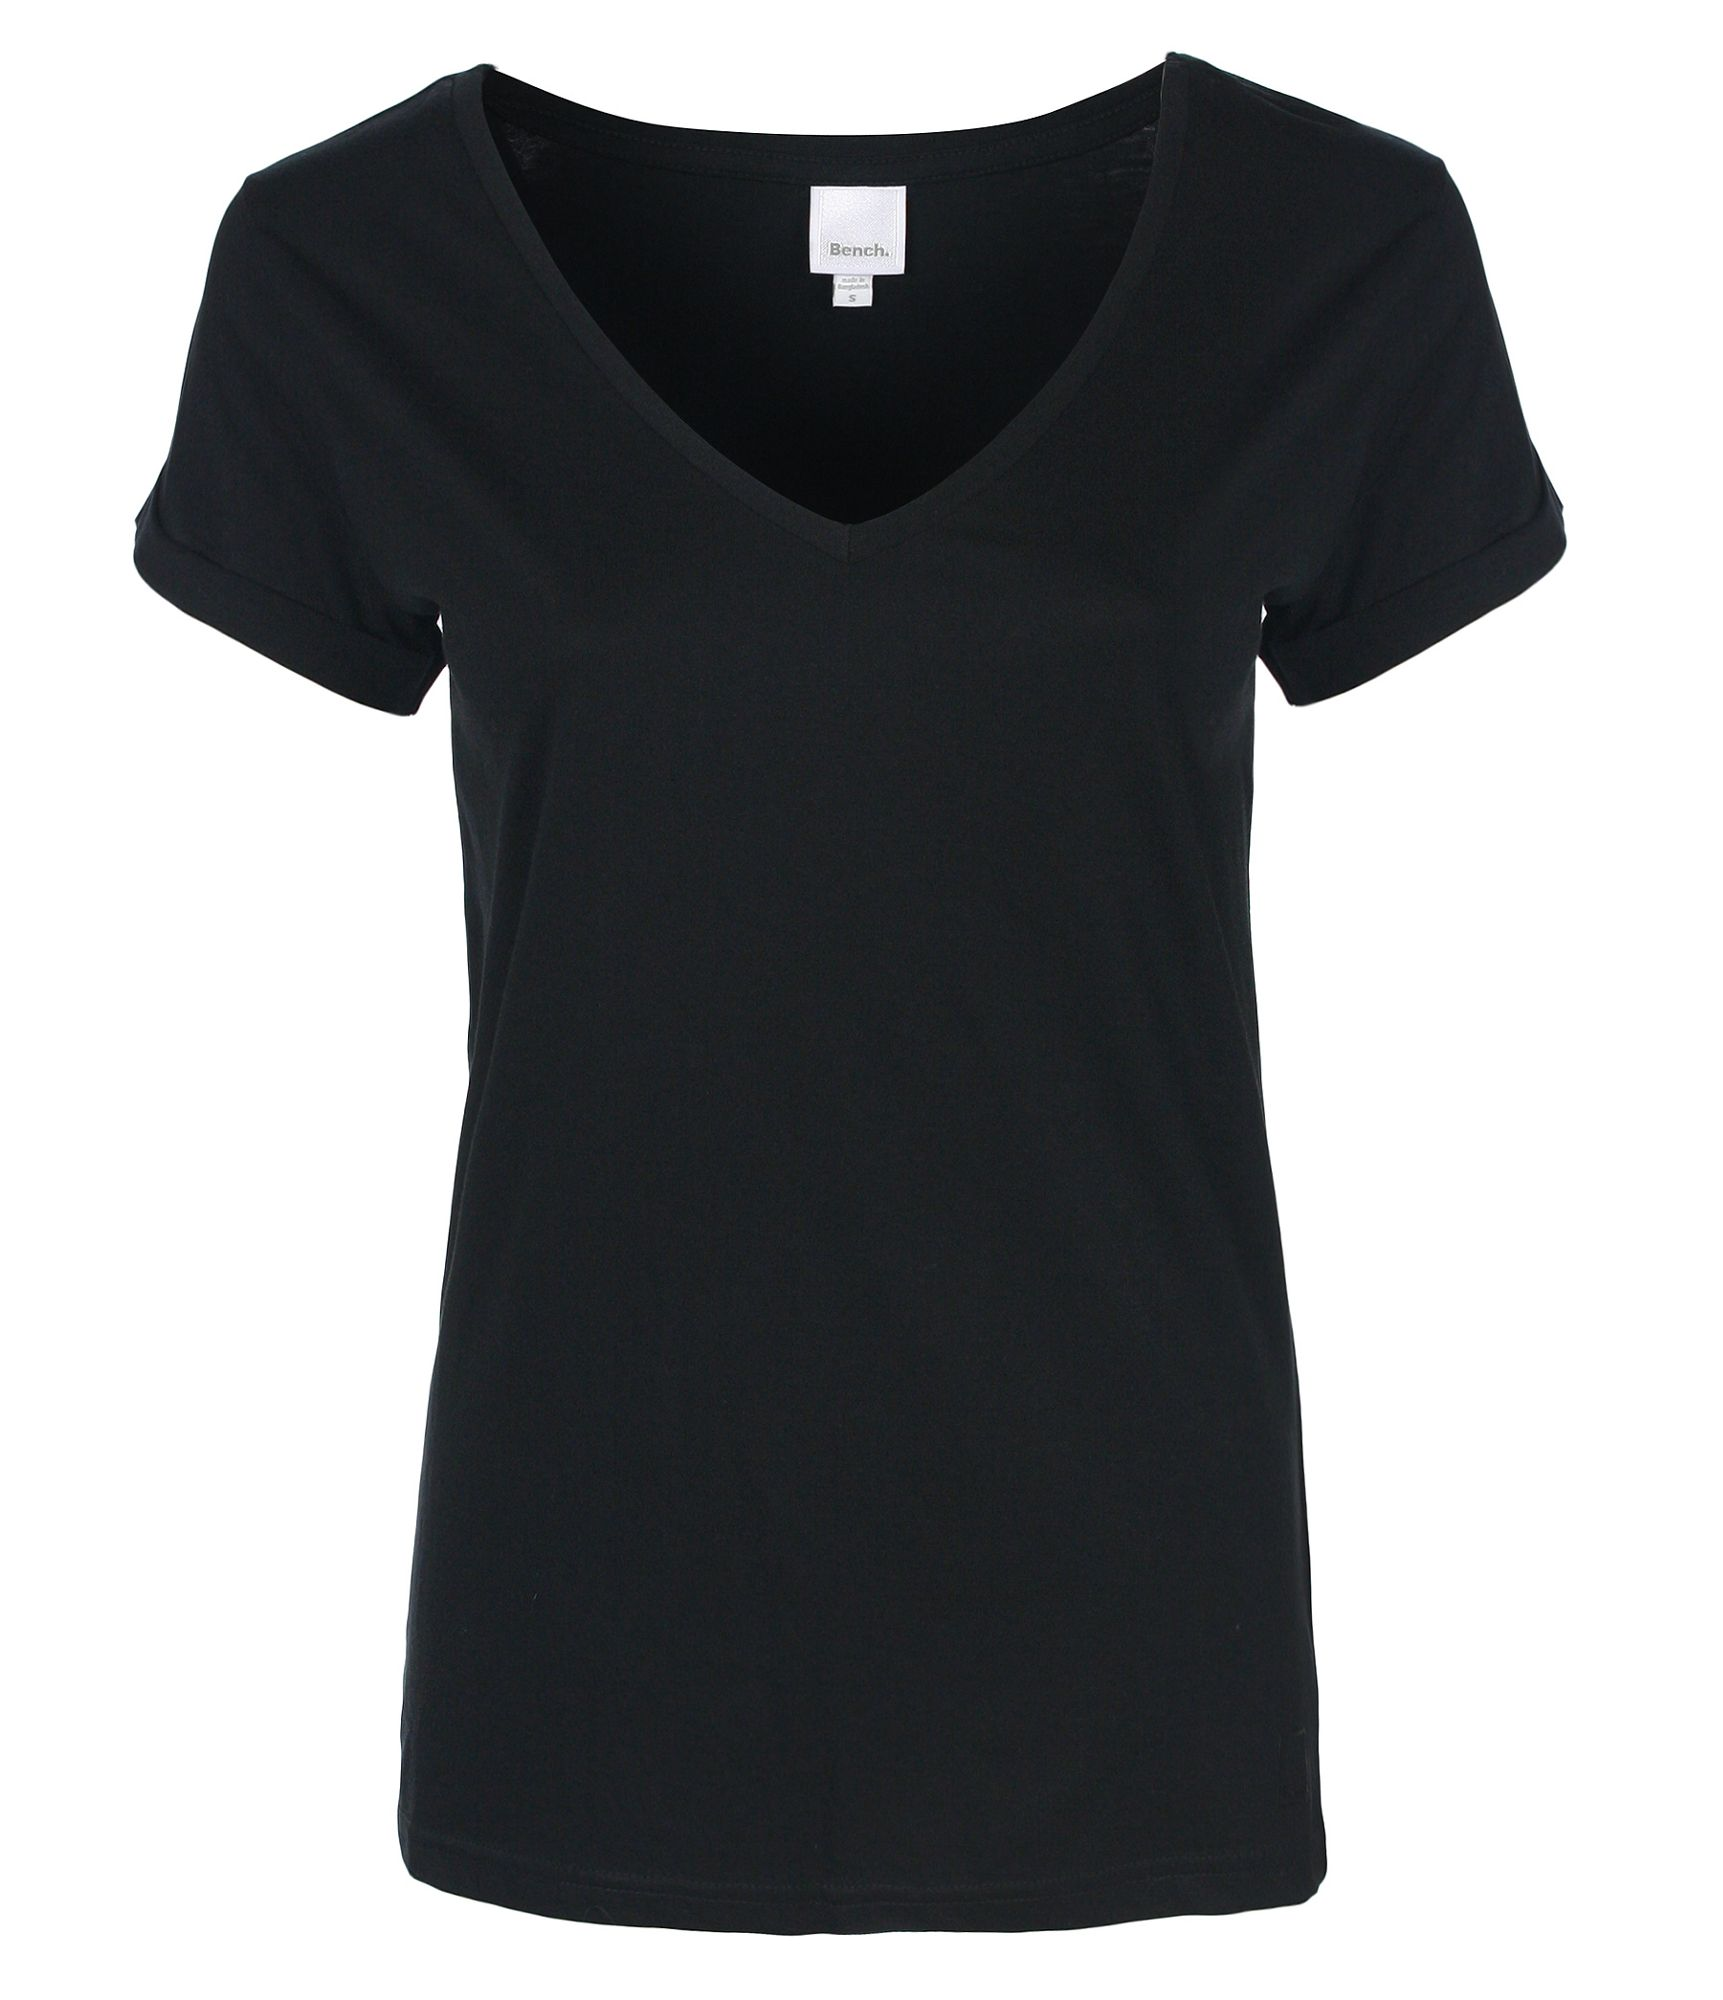 Bench womens the v tee v neck t shirt in black lyst Womens black tee shirt